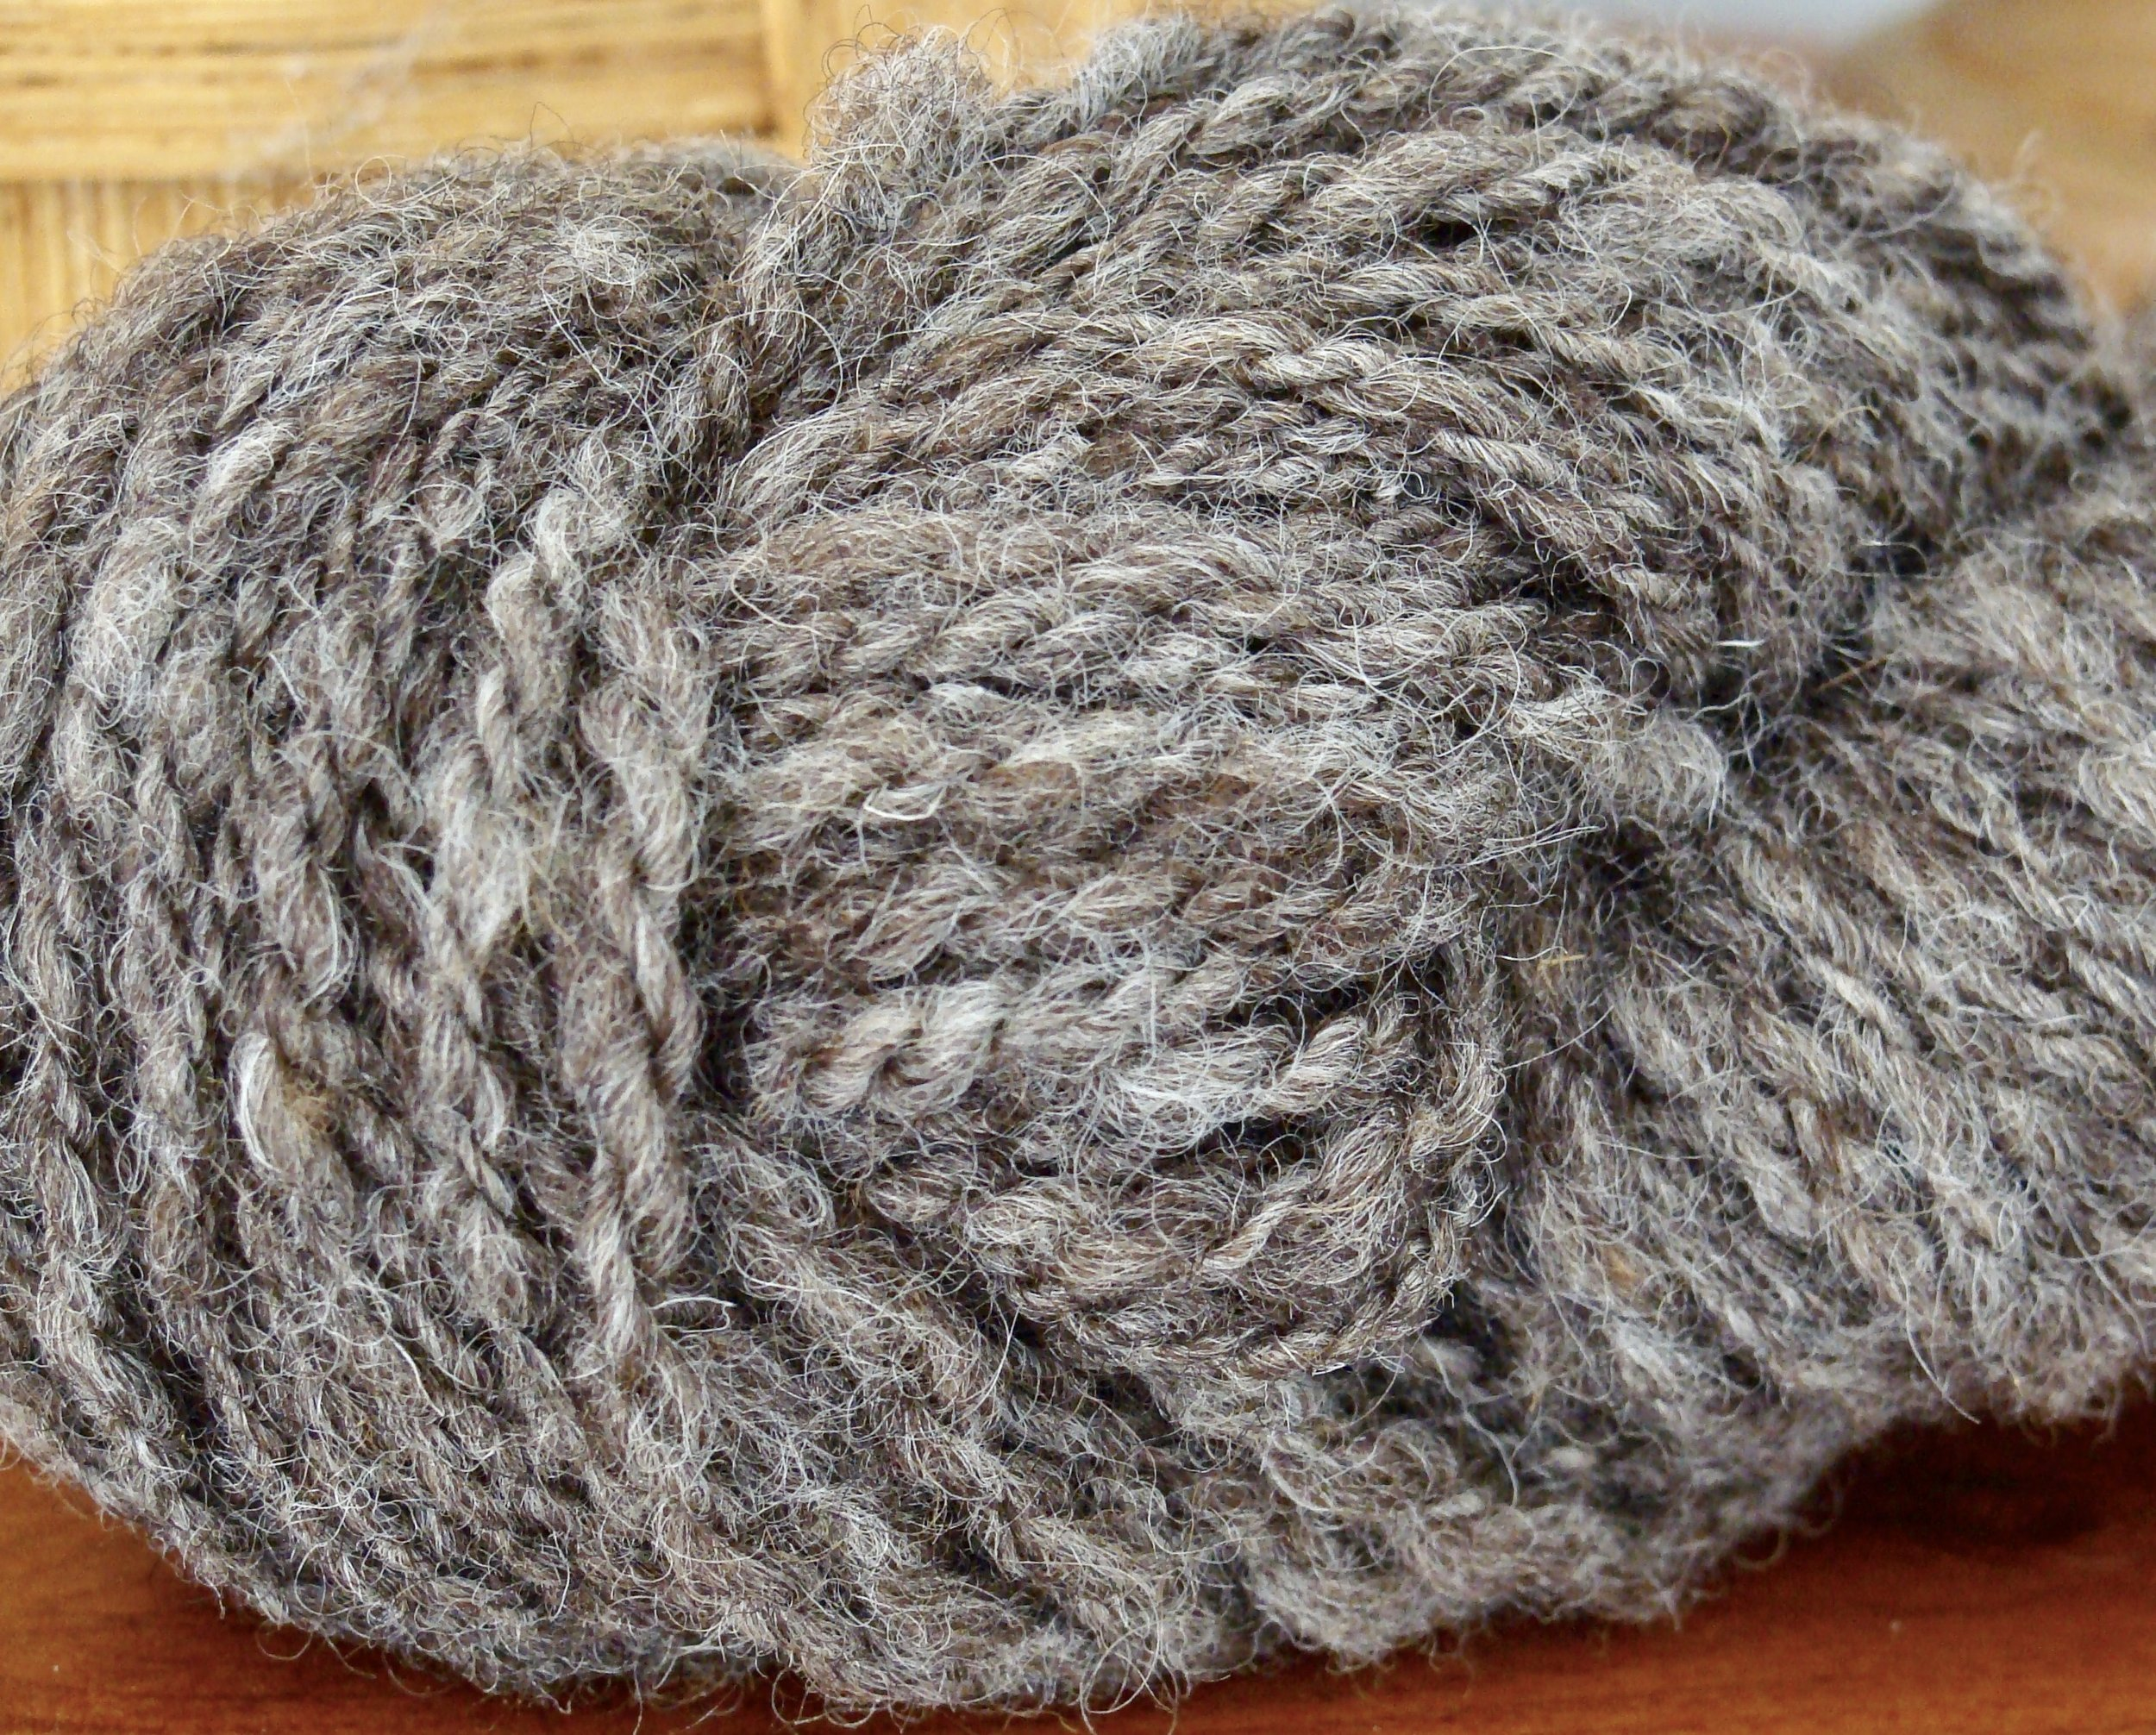 Coopworth wool handspun 2-ply after finishing